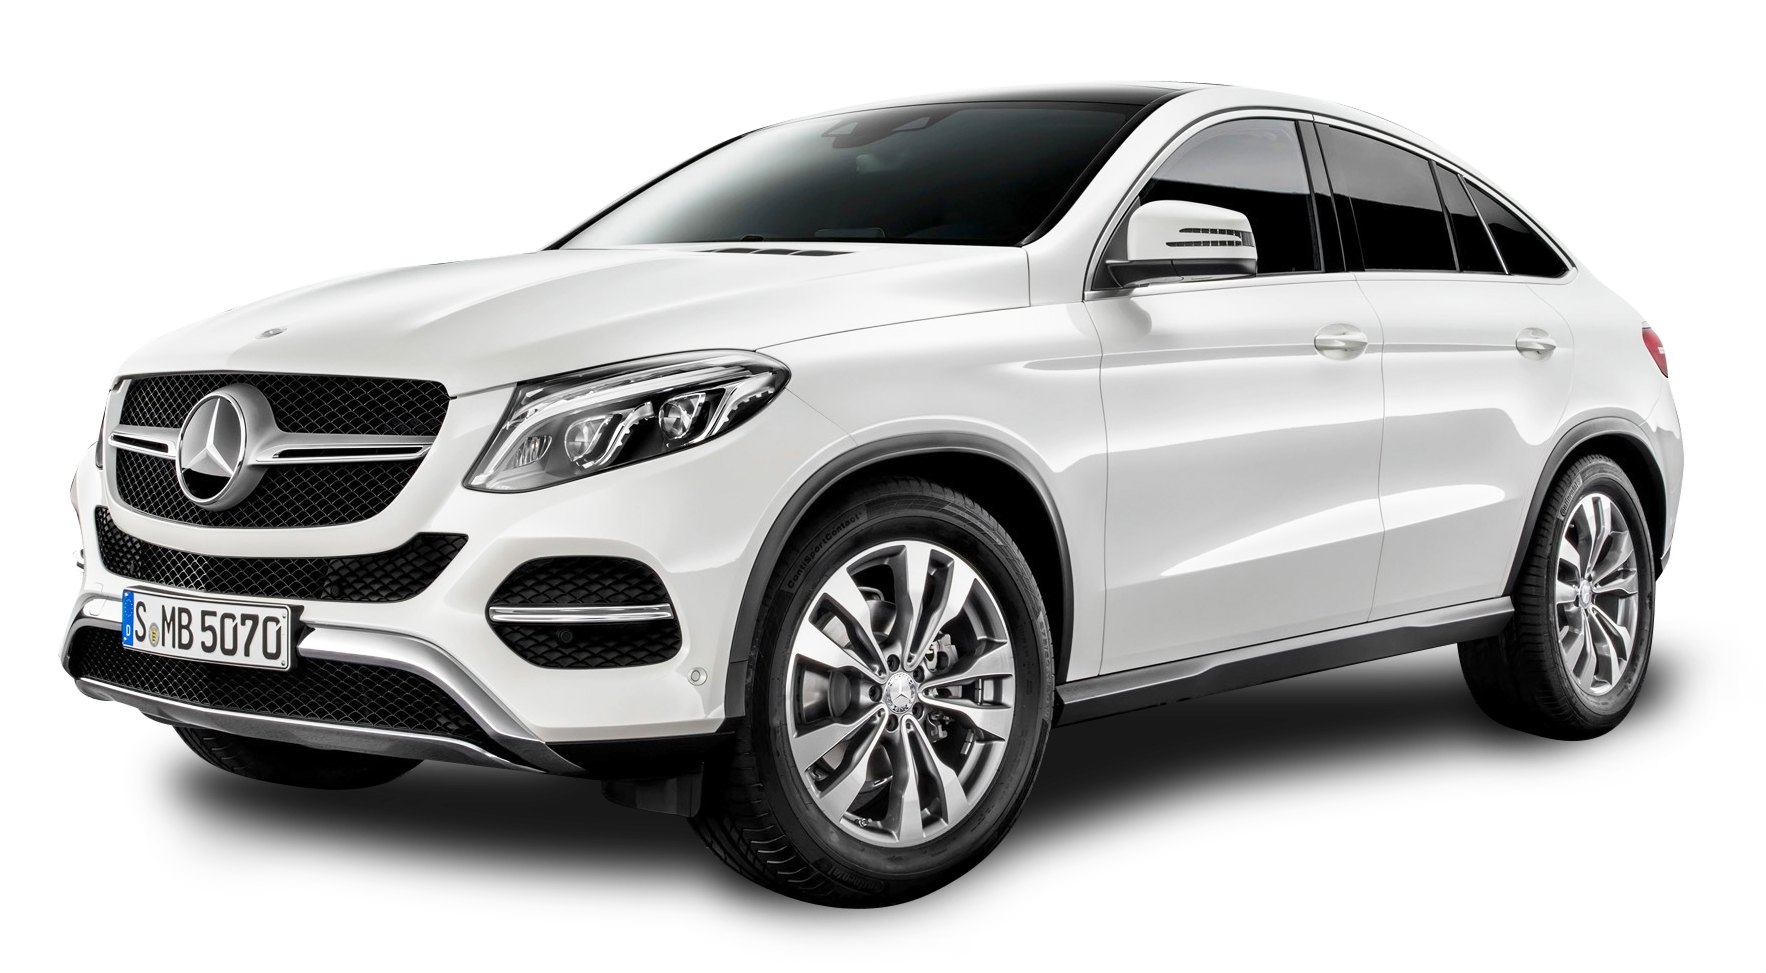 Mercedes Benz Gle Coupe Weisses Auto Png Bild Transportation Mercedes Gle Coupe Coupe Mercedes